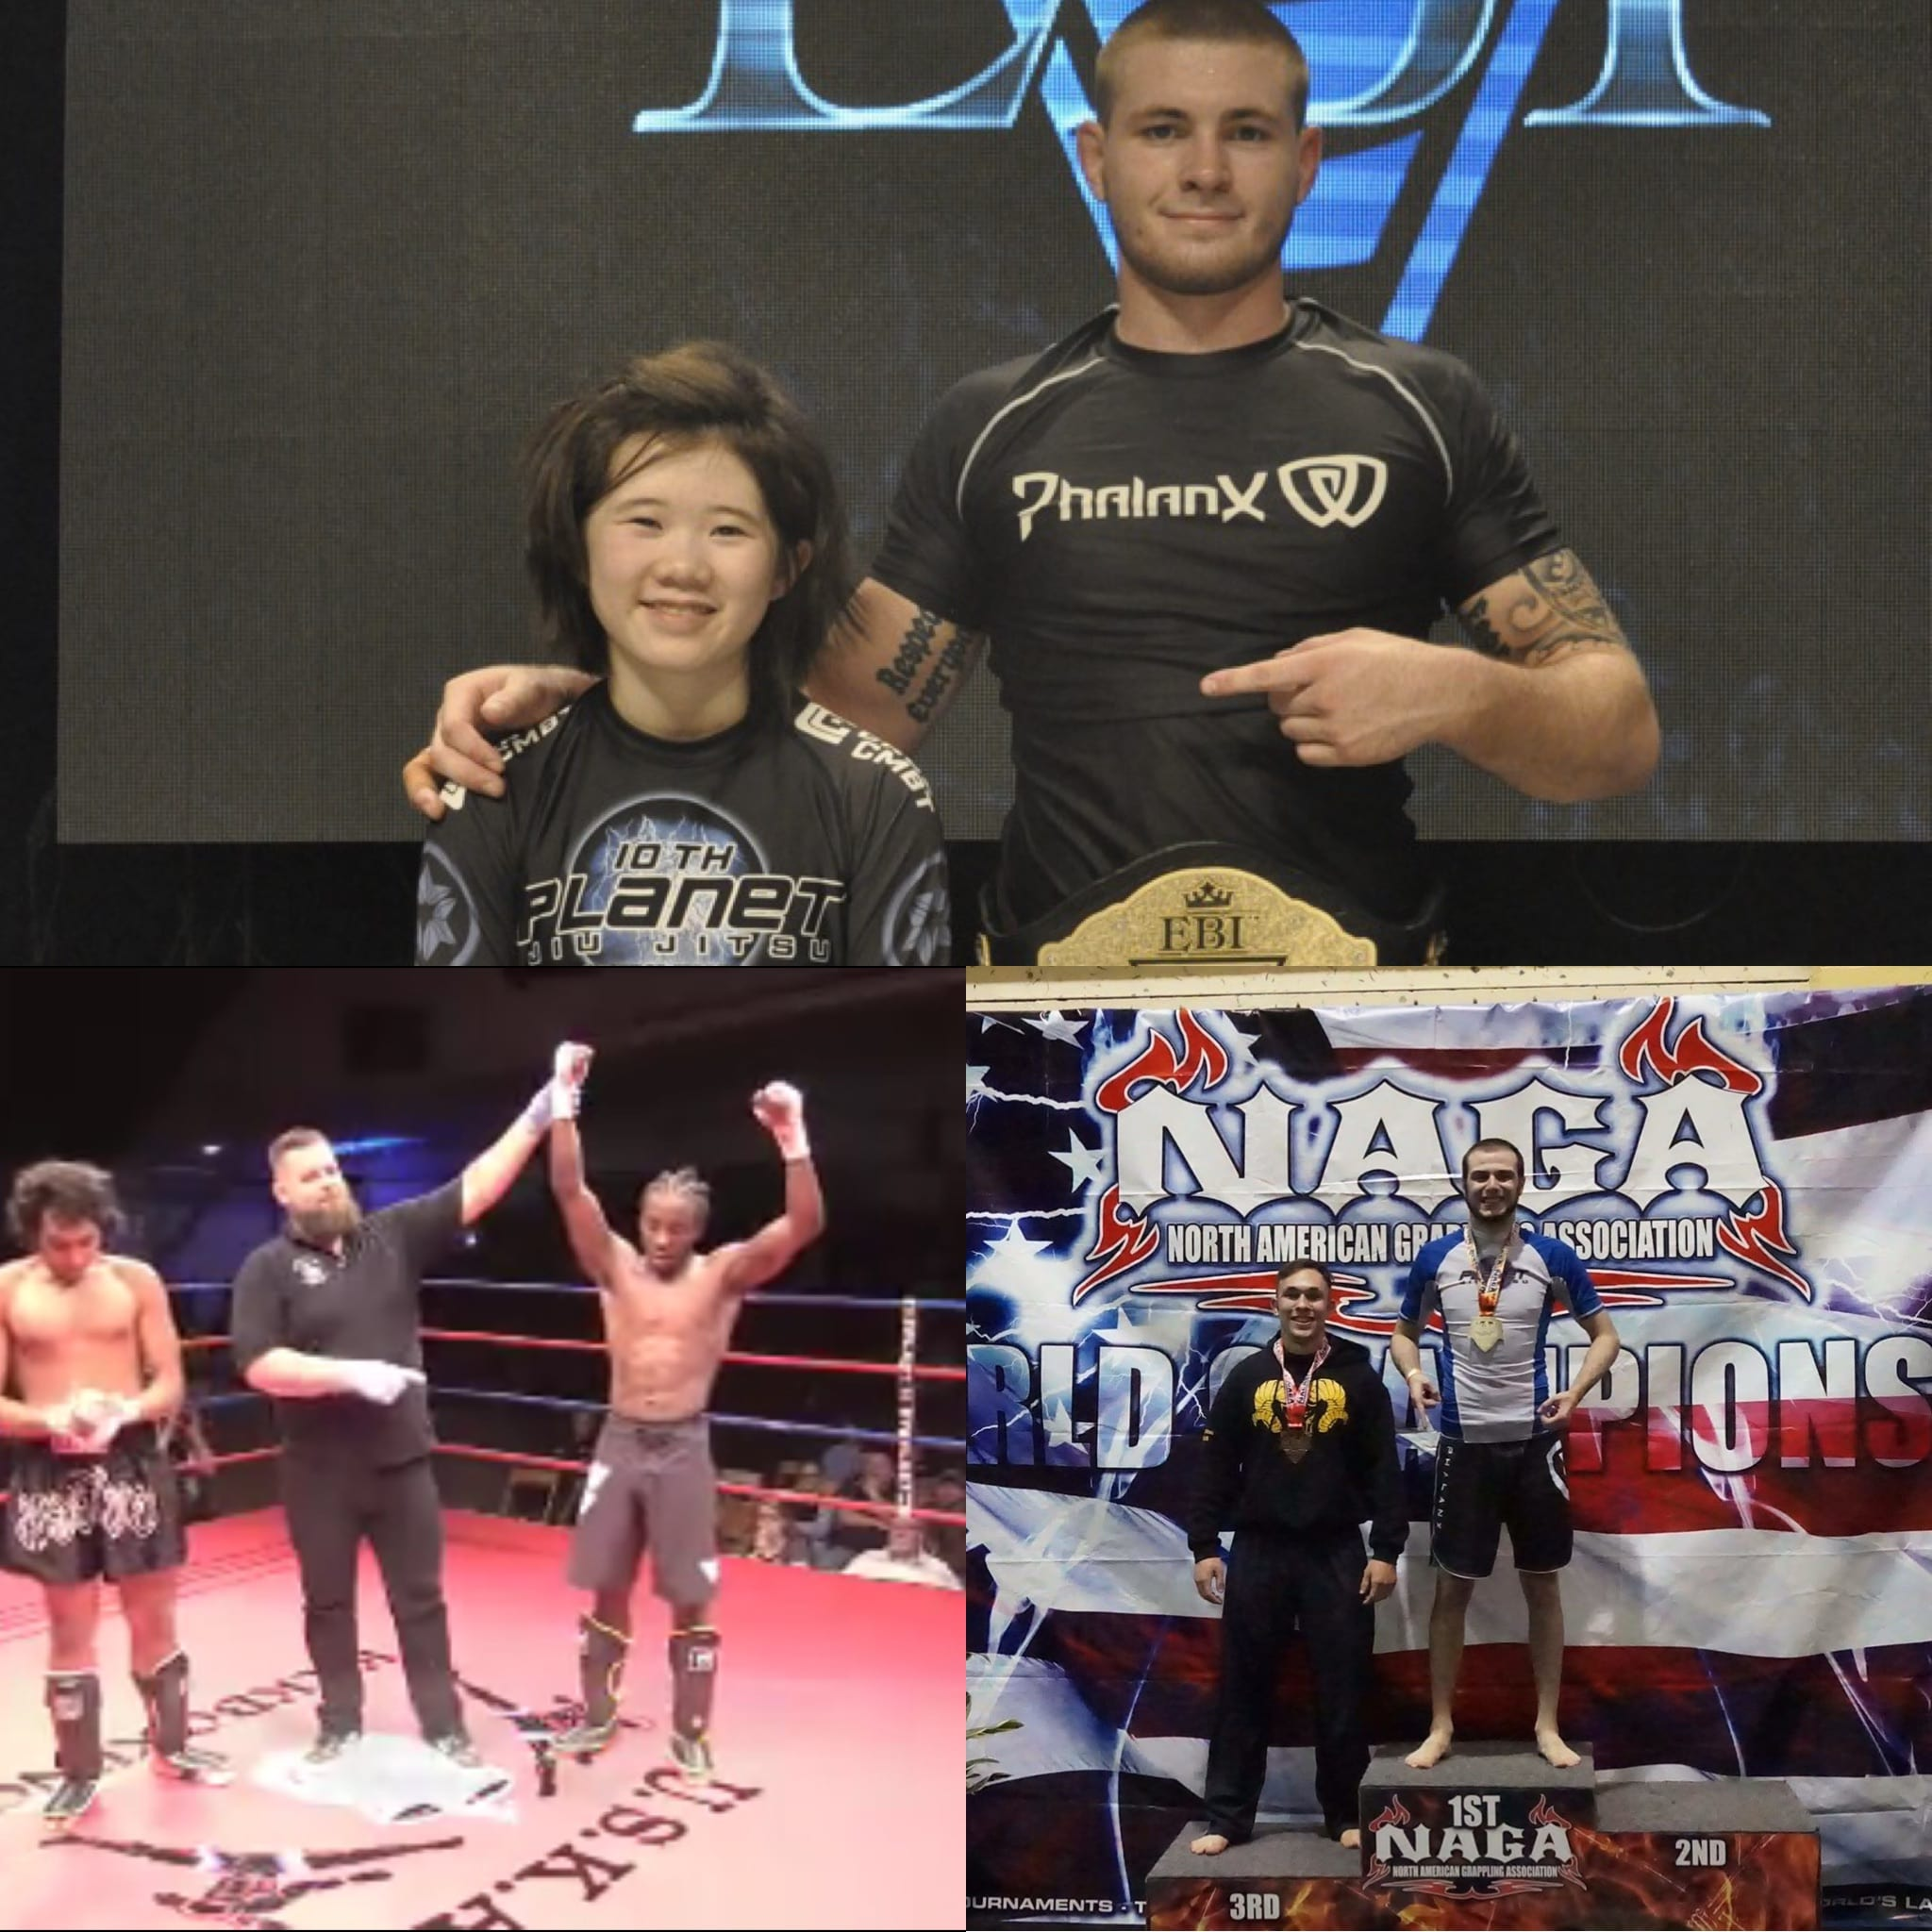 Epic Weekend for Finishers MMA/10th Planet Bethlehem